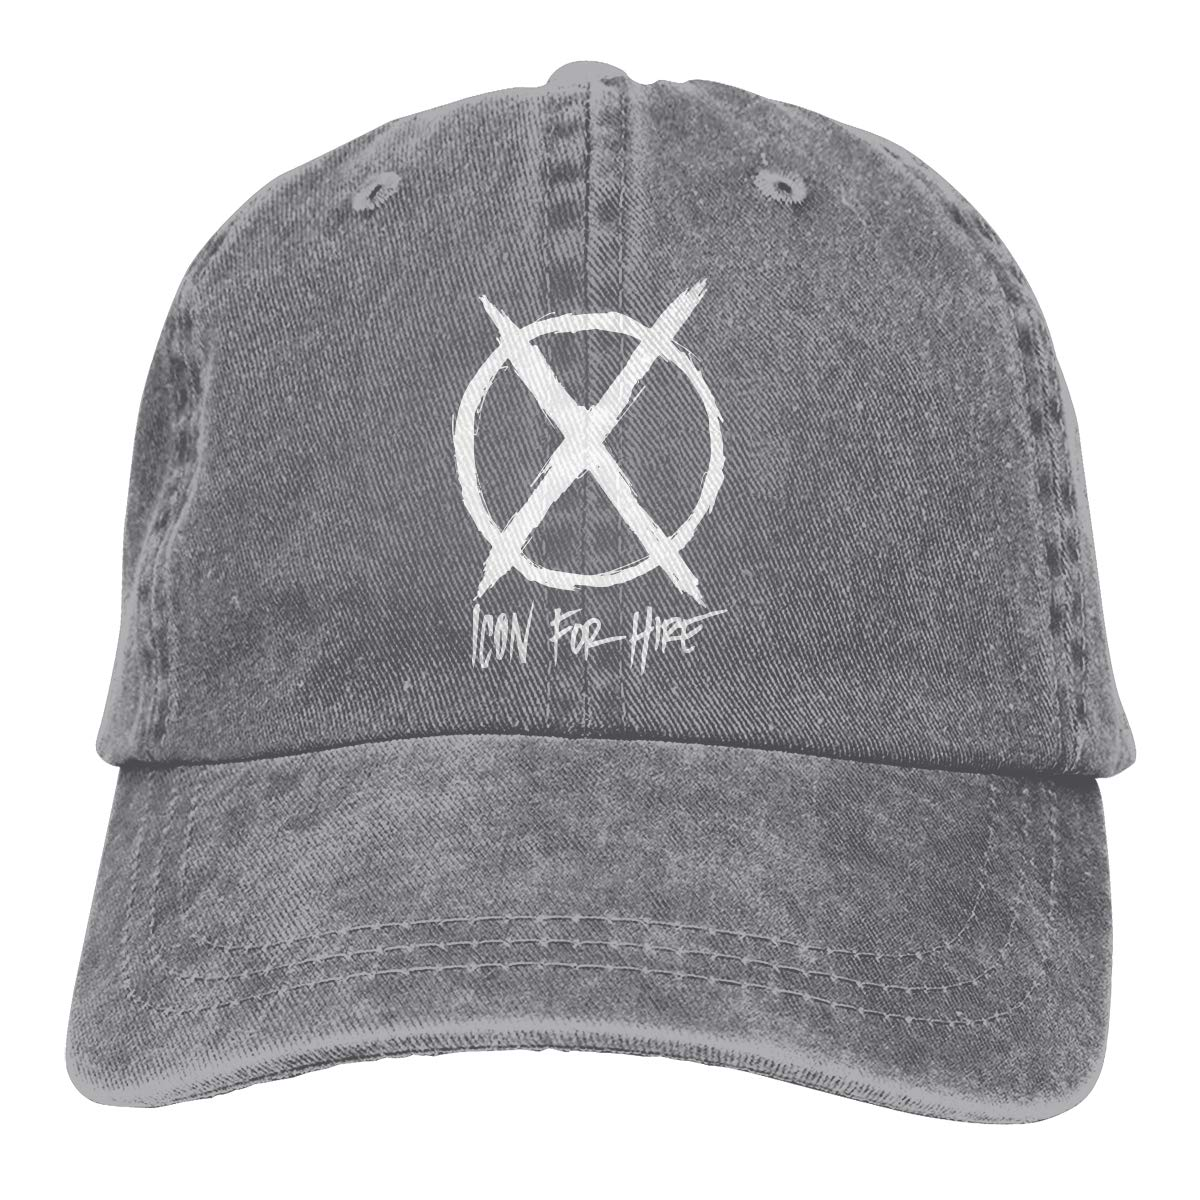 Icon for Hire Unisex Trendy Cowboy Hat Hip Hop Cap Adjustable Baseball Cap